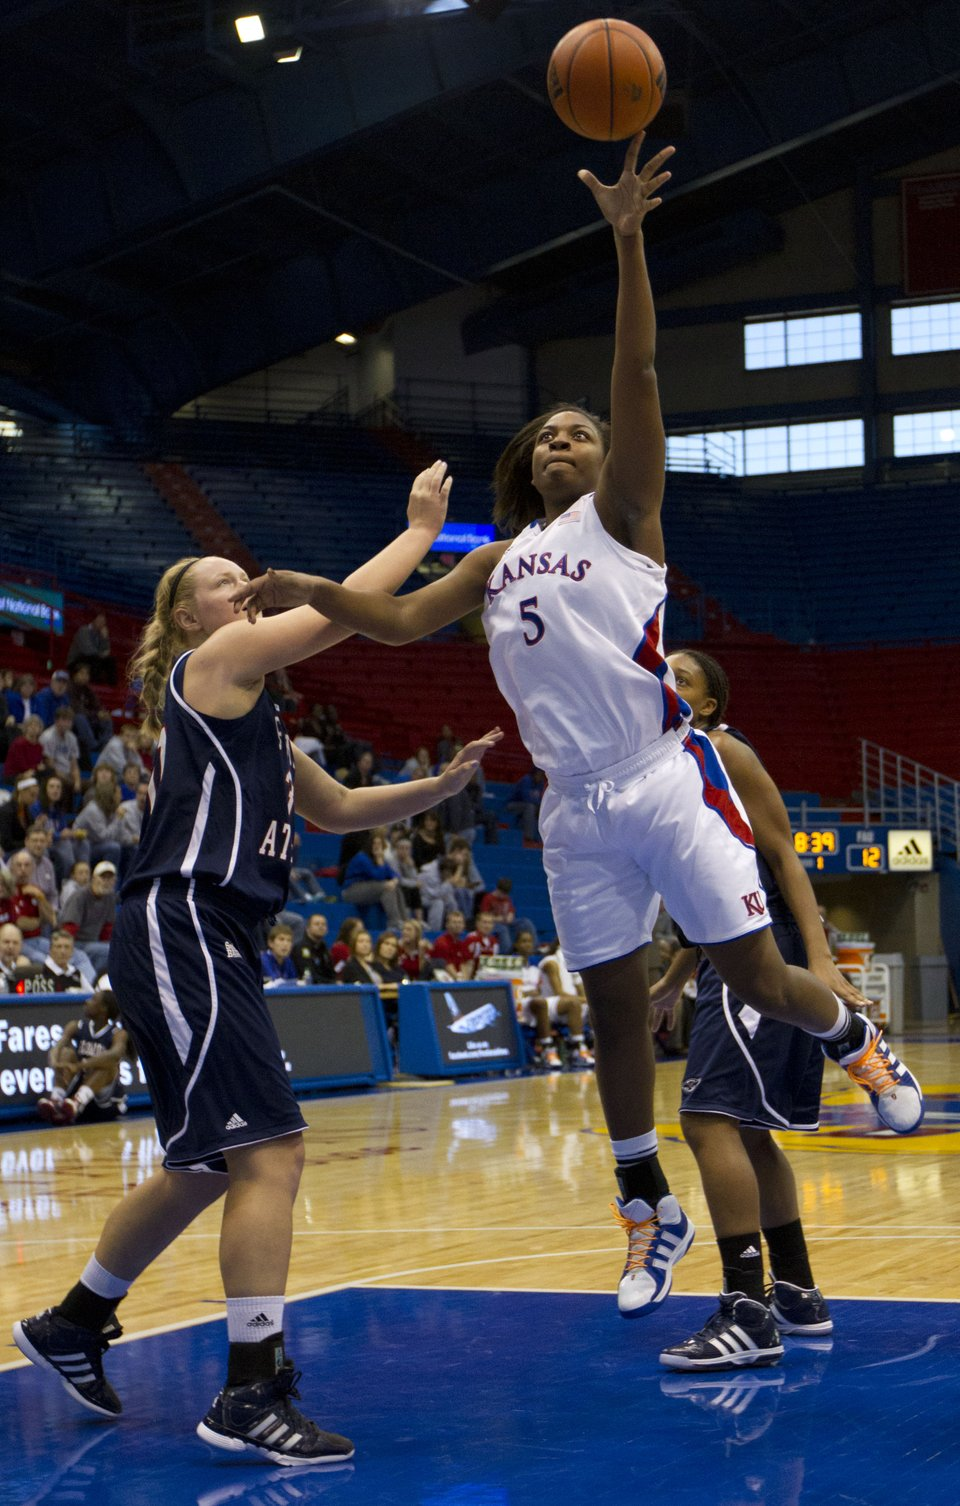 KU women's basketball vs. FAU | KUsports.com